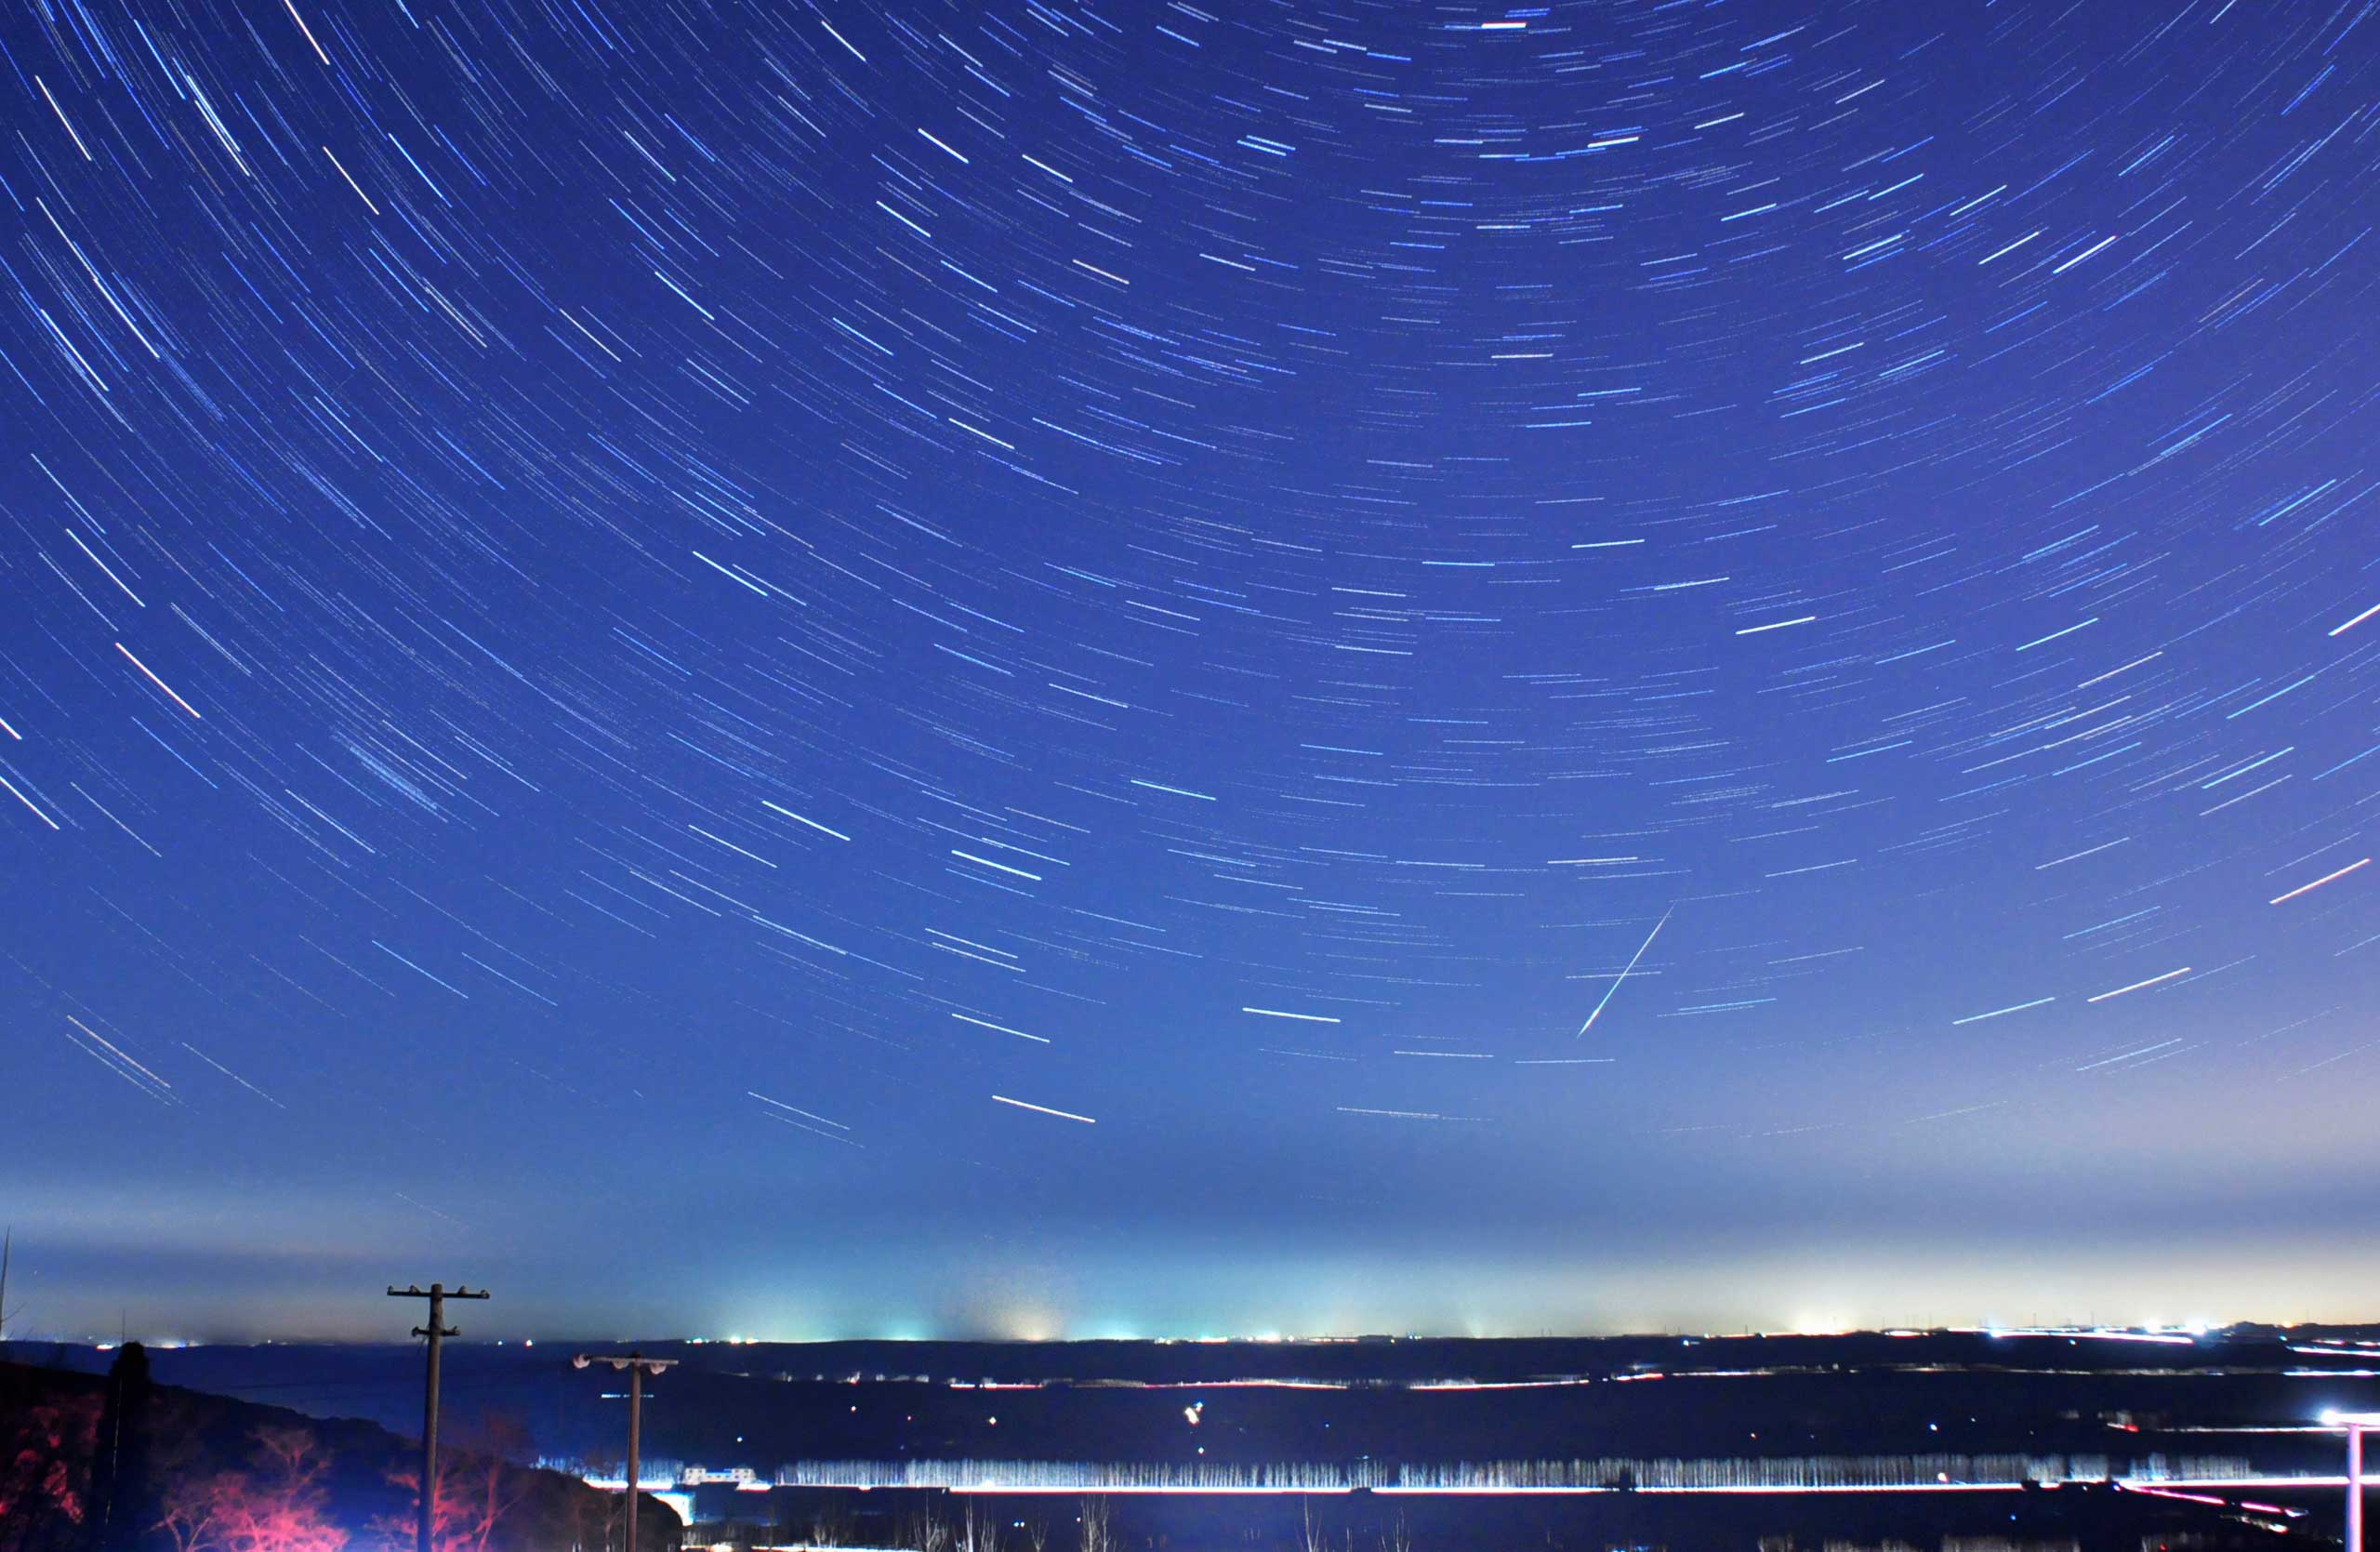 A long exposure shows the 2014 Quadrantid meteor shower, as seen in Qingdao, Shandong province, China, Jan. 4, 2014.